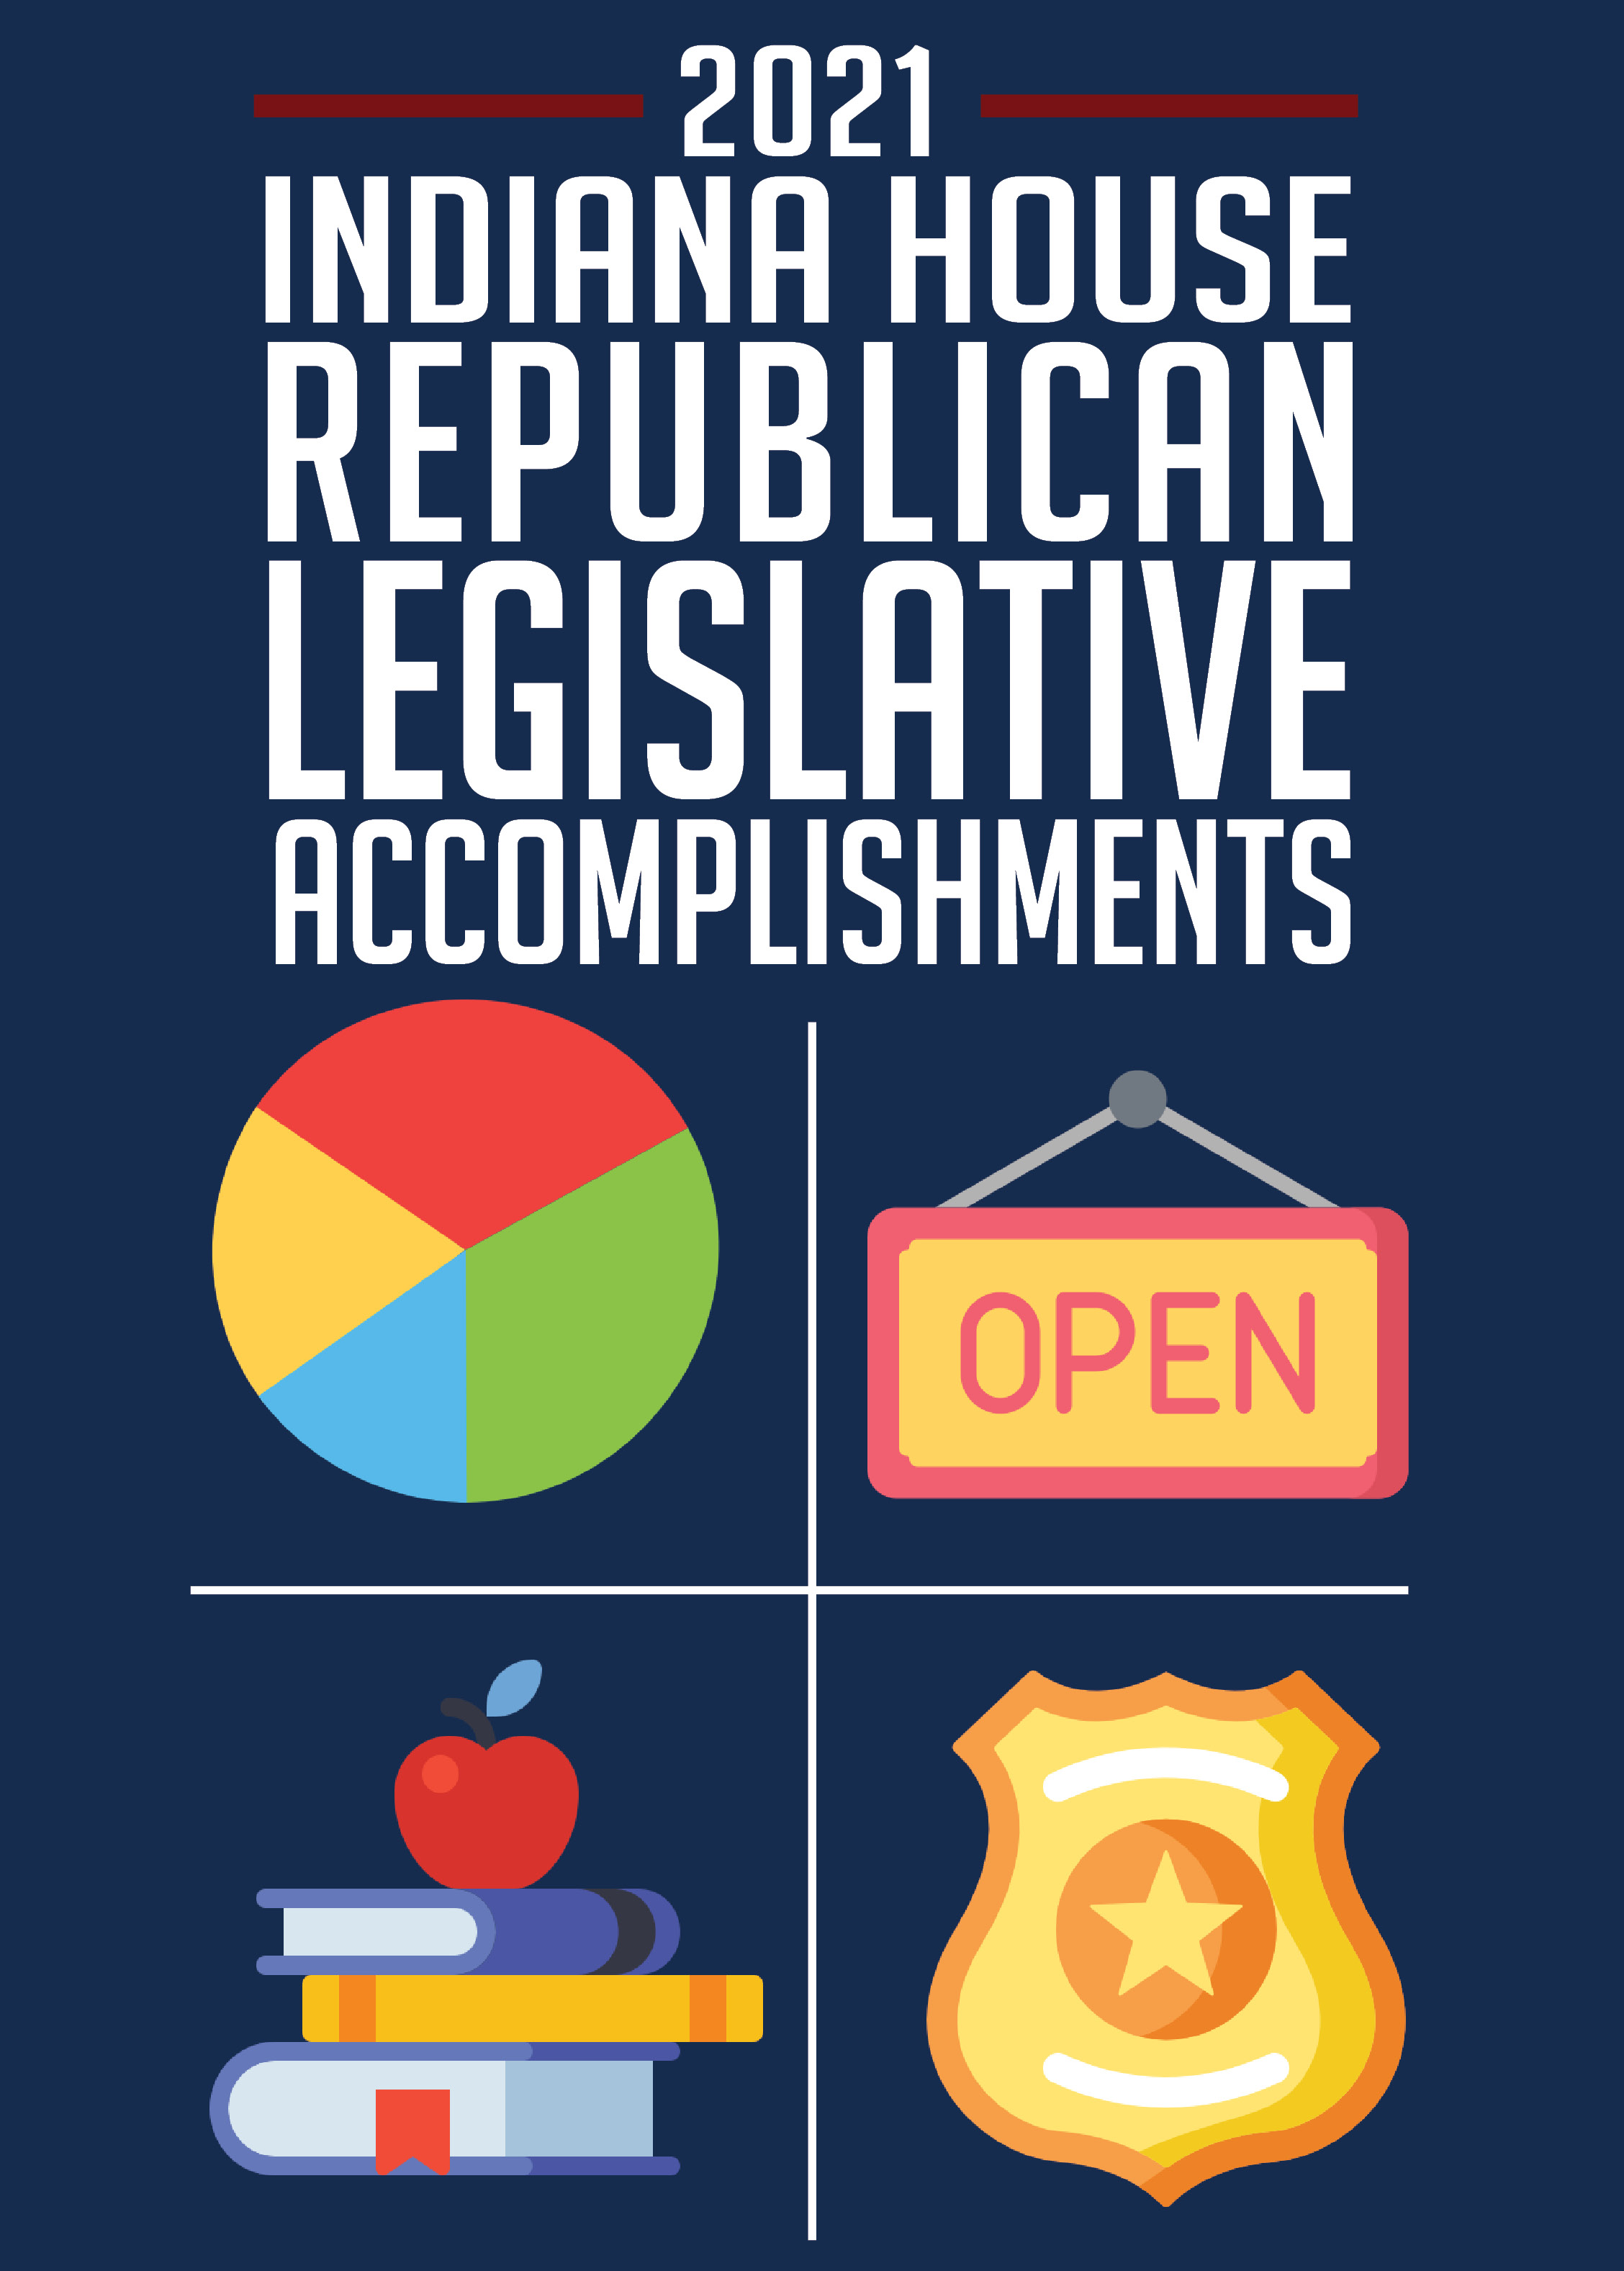 House Republicans finish session and accomplish 2021 legislative priorities